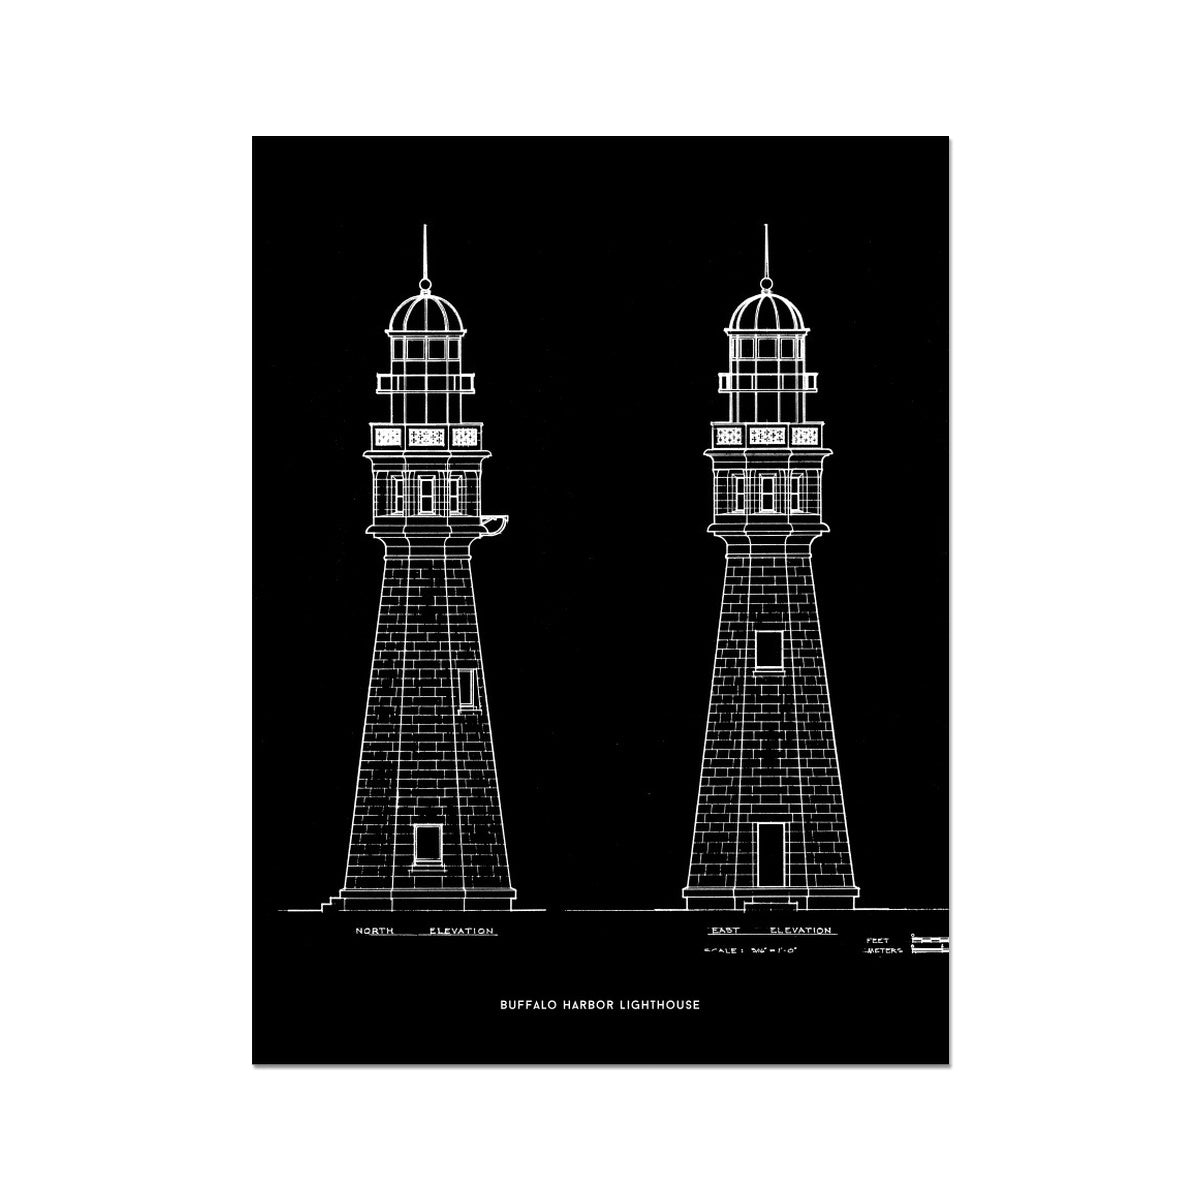 Buffalo Harbor Lighthouse - North and East Elevations - Black -  Etching Paper Print